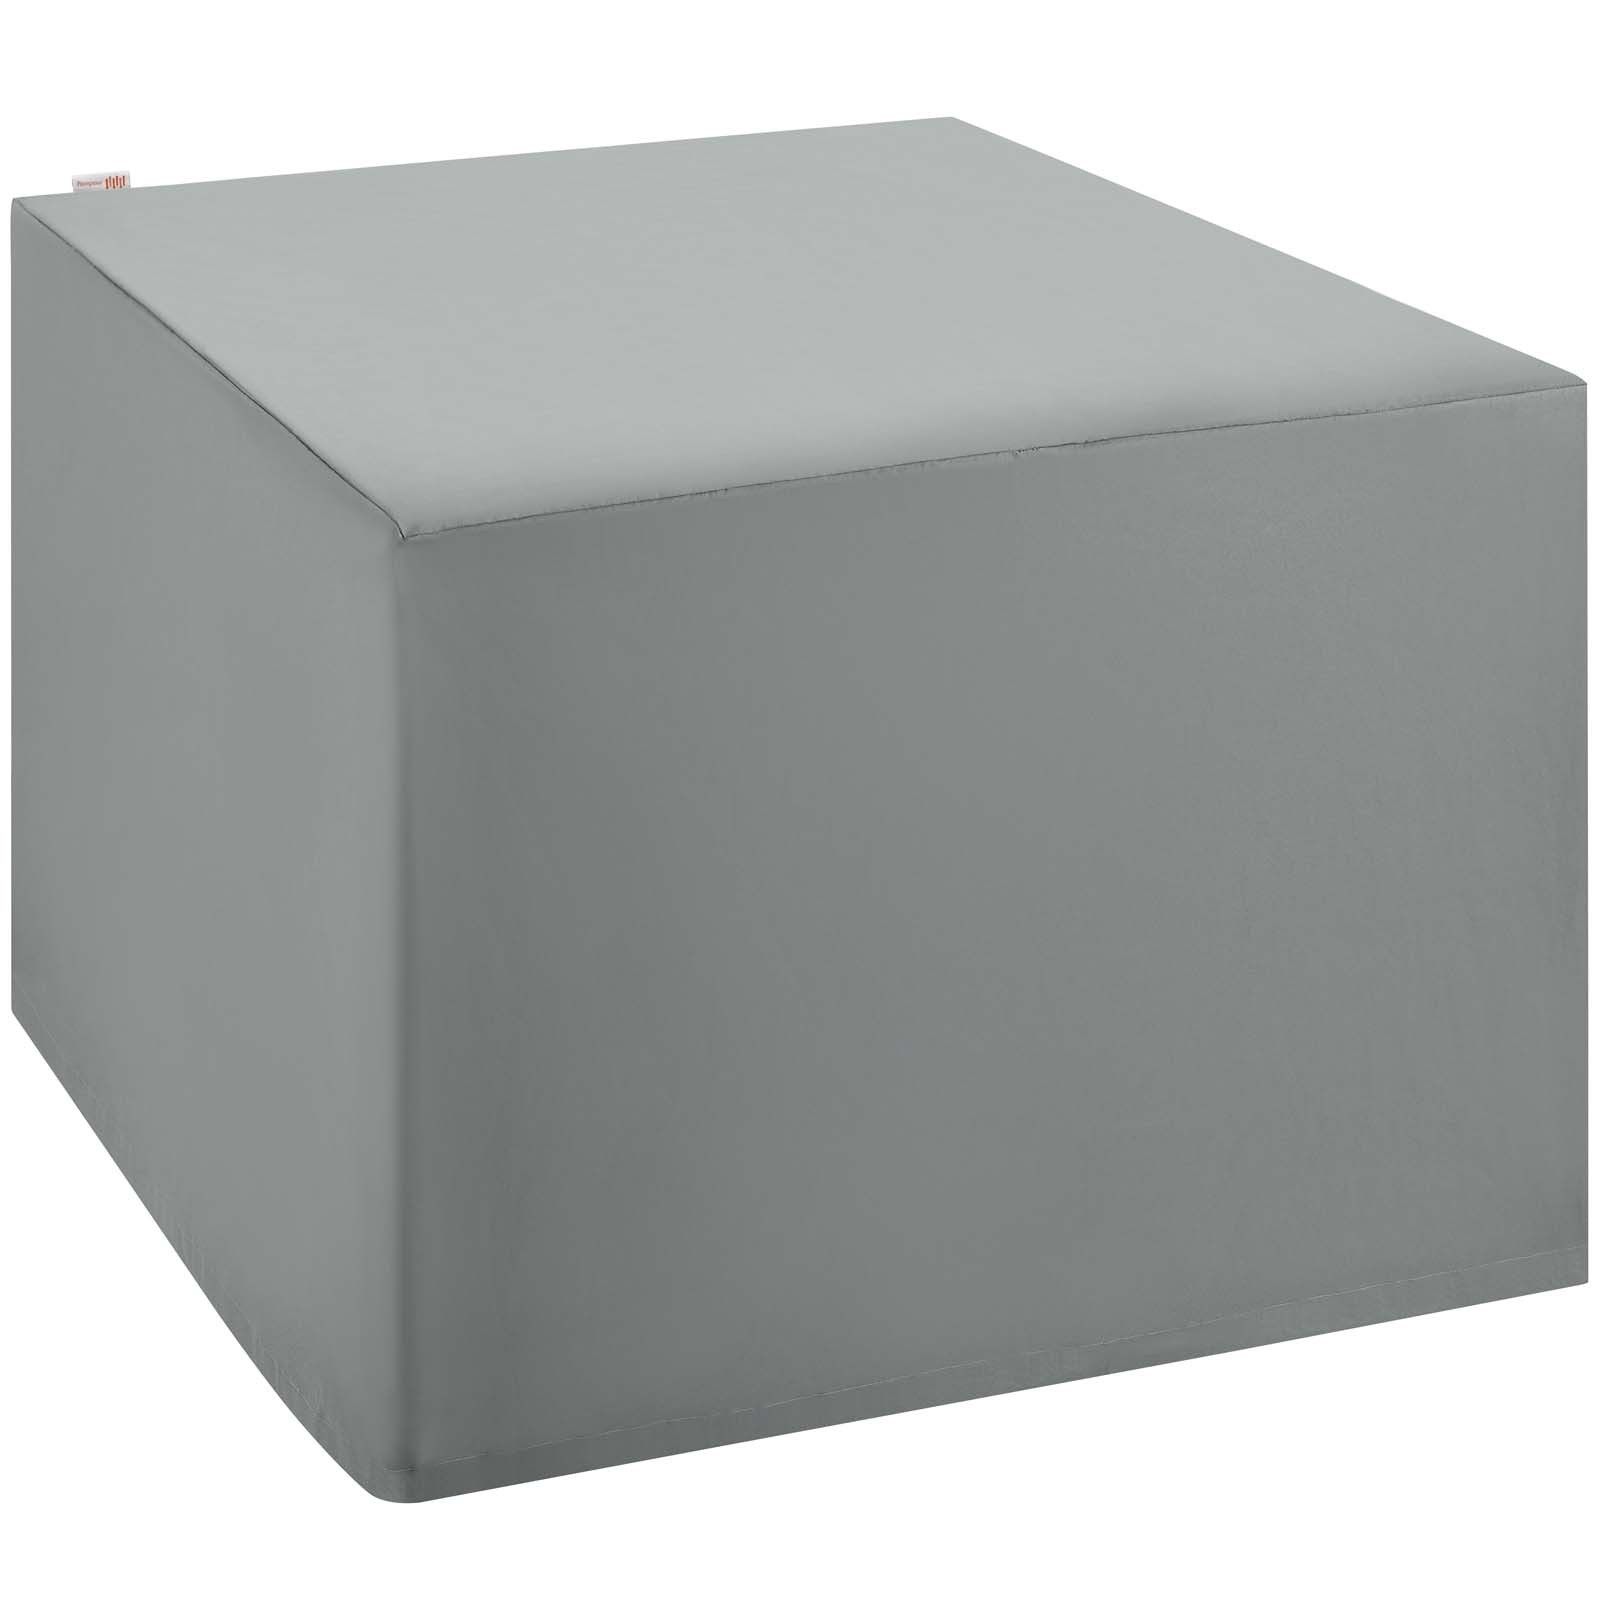 Immerse Convene/Sojourn/Summon Ottoman and Side Table Outdoor Patio Furniture Cover in Gray